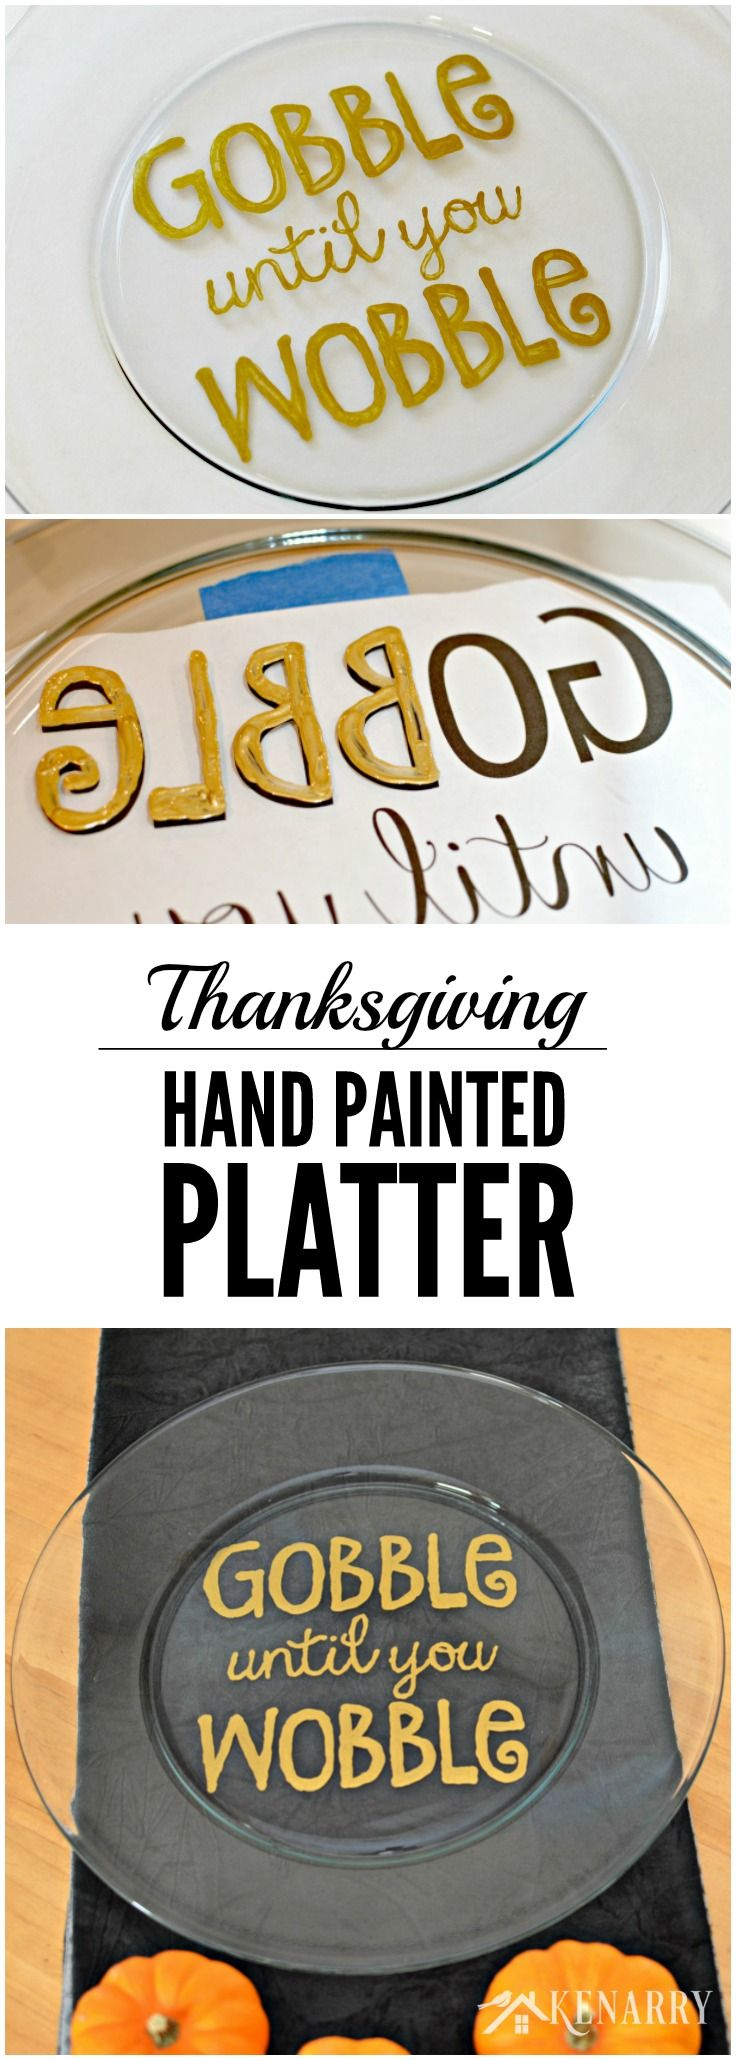 "Love this easy hostess gift idea! Make a Hand painted Thanksgiving Platter that says ""Gobble Until You Wobble"" using a big plate and gold enamel craft paint."